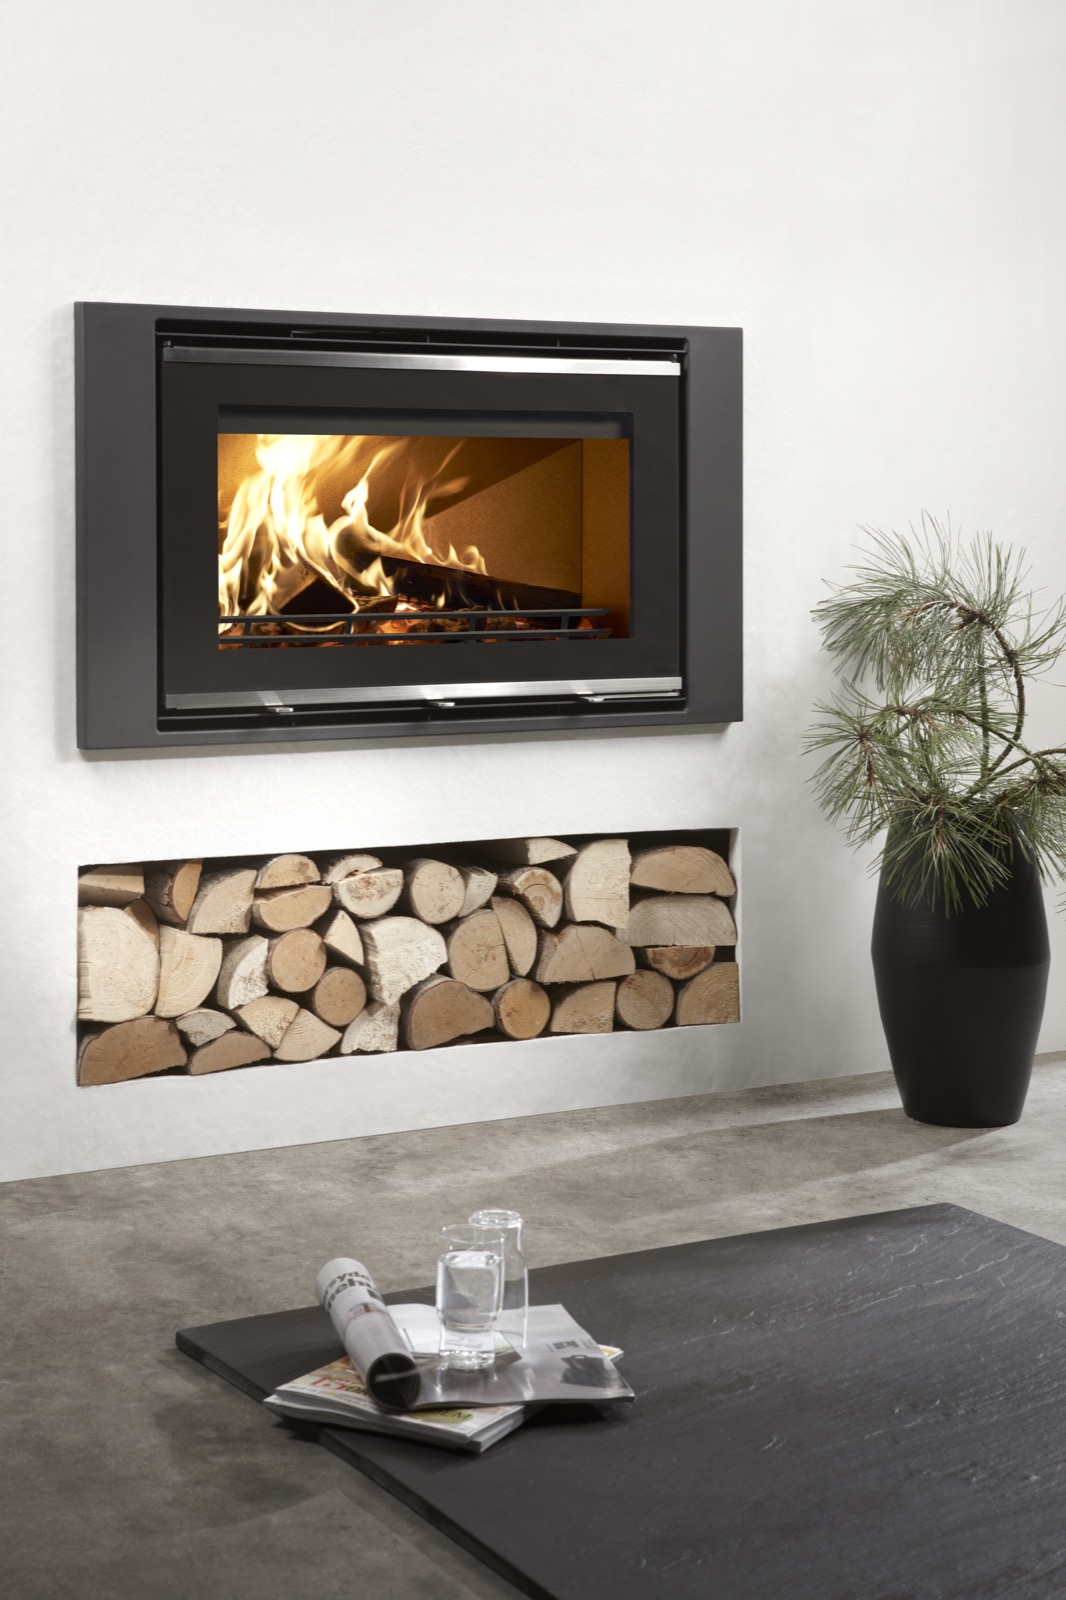 Westfire Uniq 32 Glass Fronted Inset Wood Burning Stove